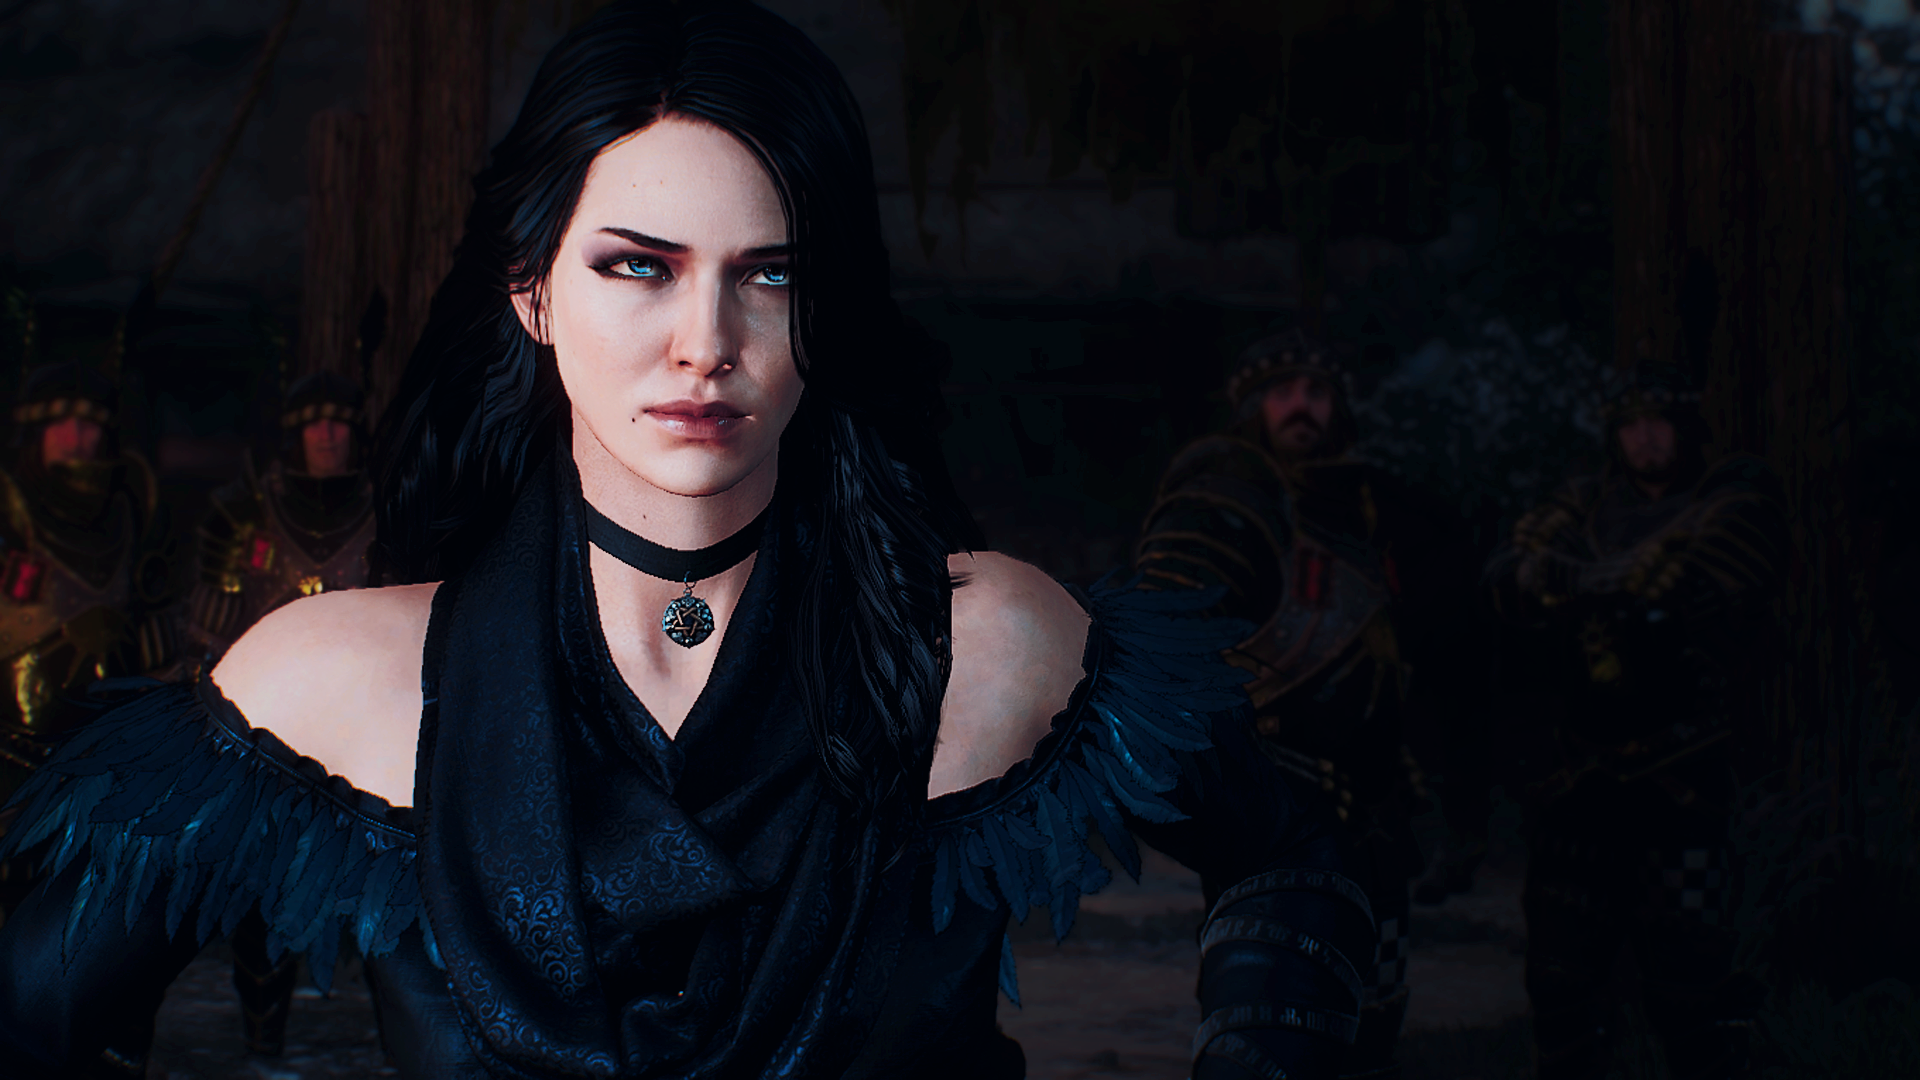 282294 Video Games The Witcher The Witcher 3 Wild Hunt Yennefer Of Vengerberg Png 1920 1080 Witcher Wallpaper Bruxas Anjos